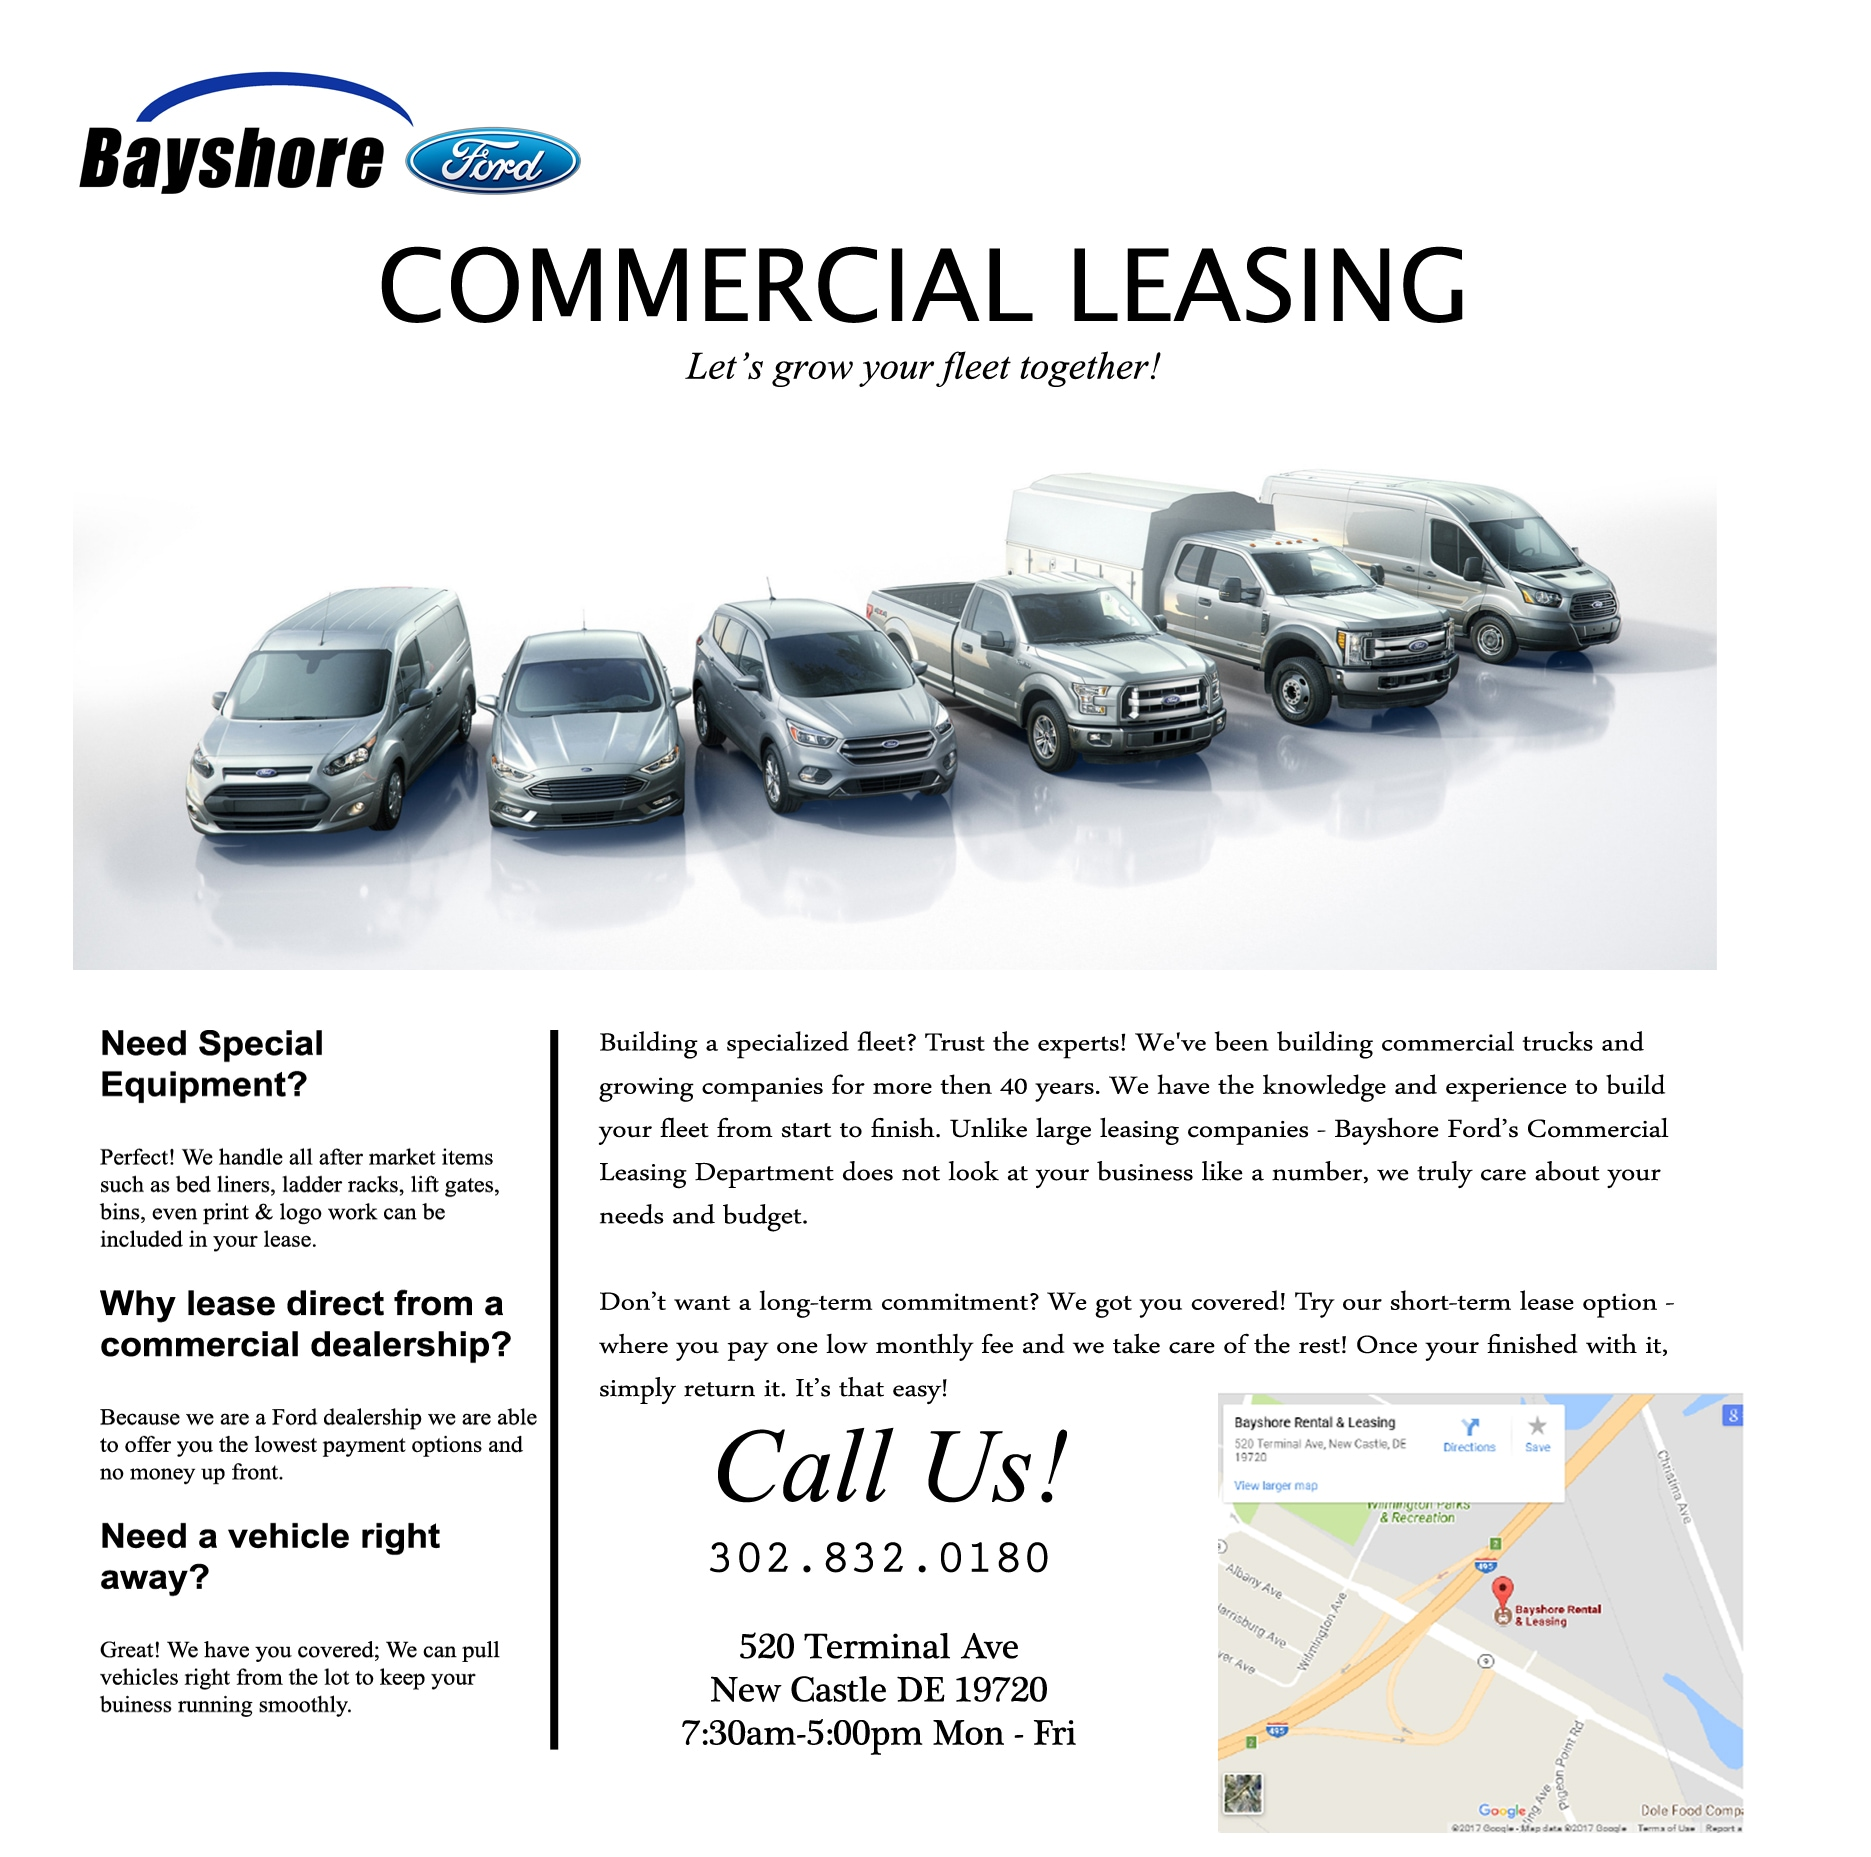 Commercial Leasing | Bayshore Ford Truck Sales